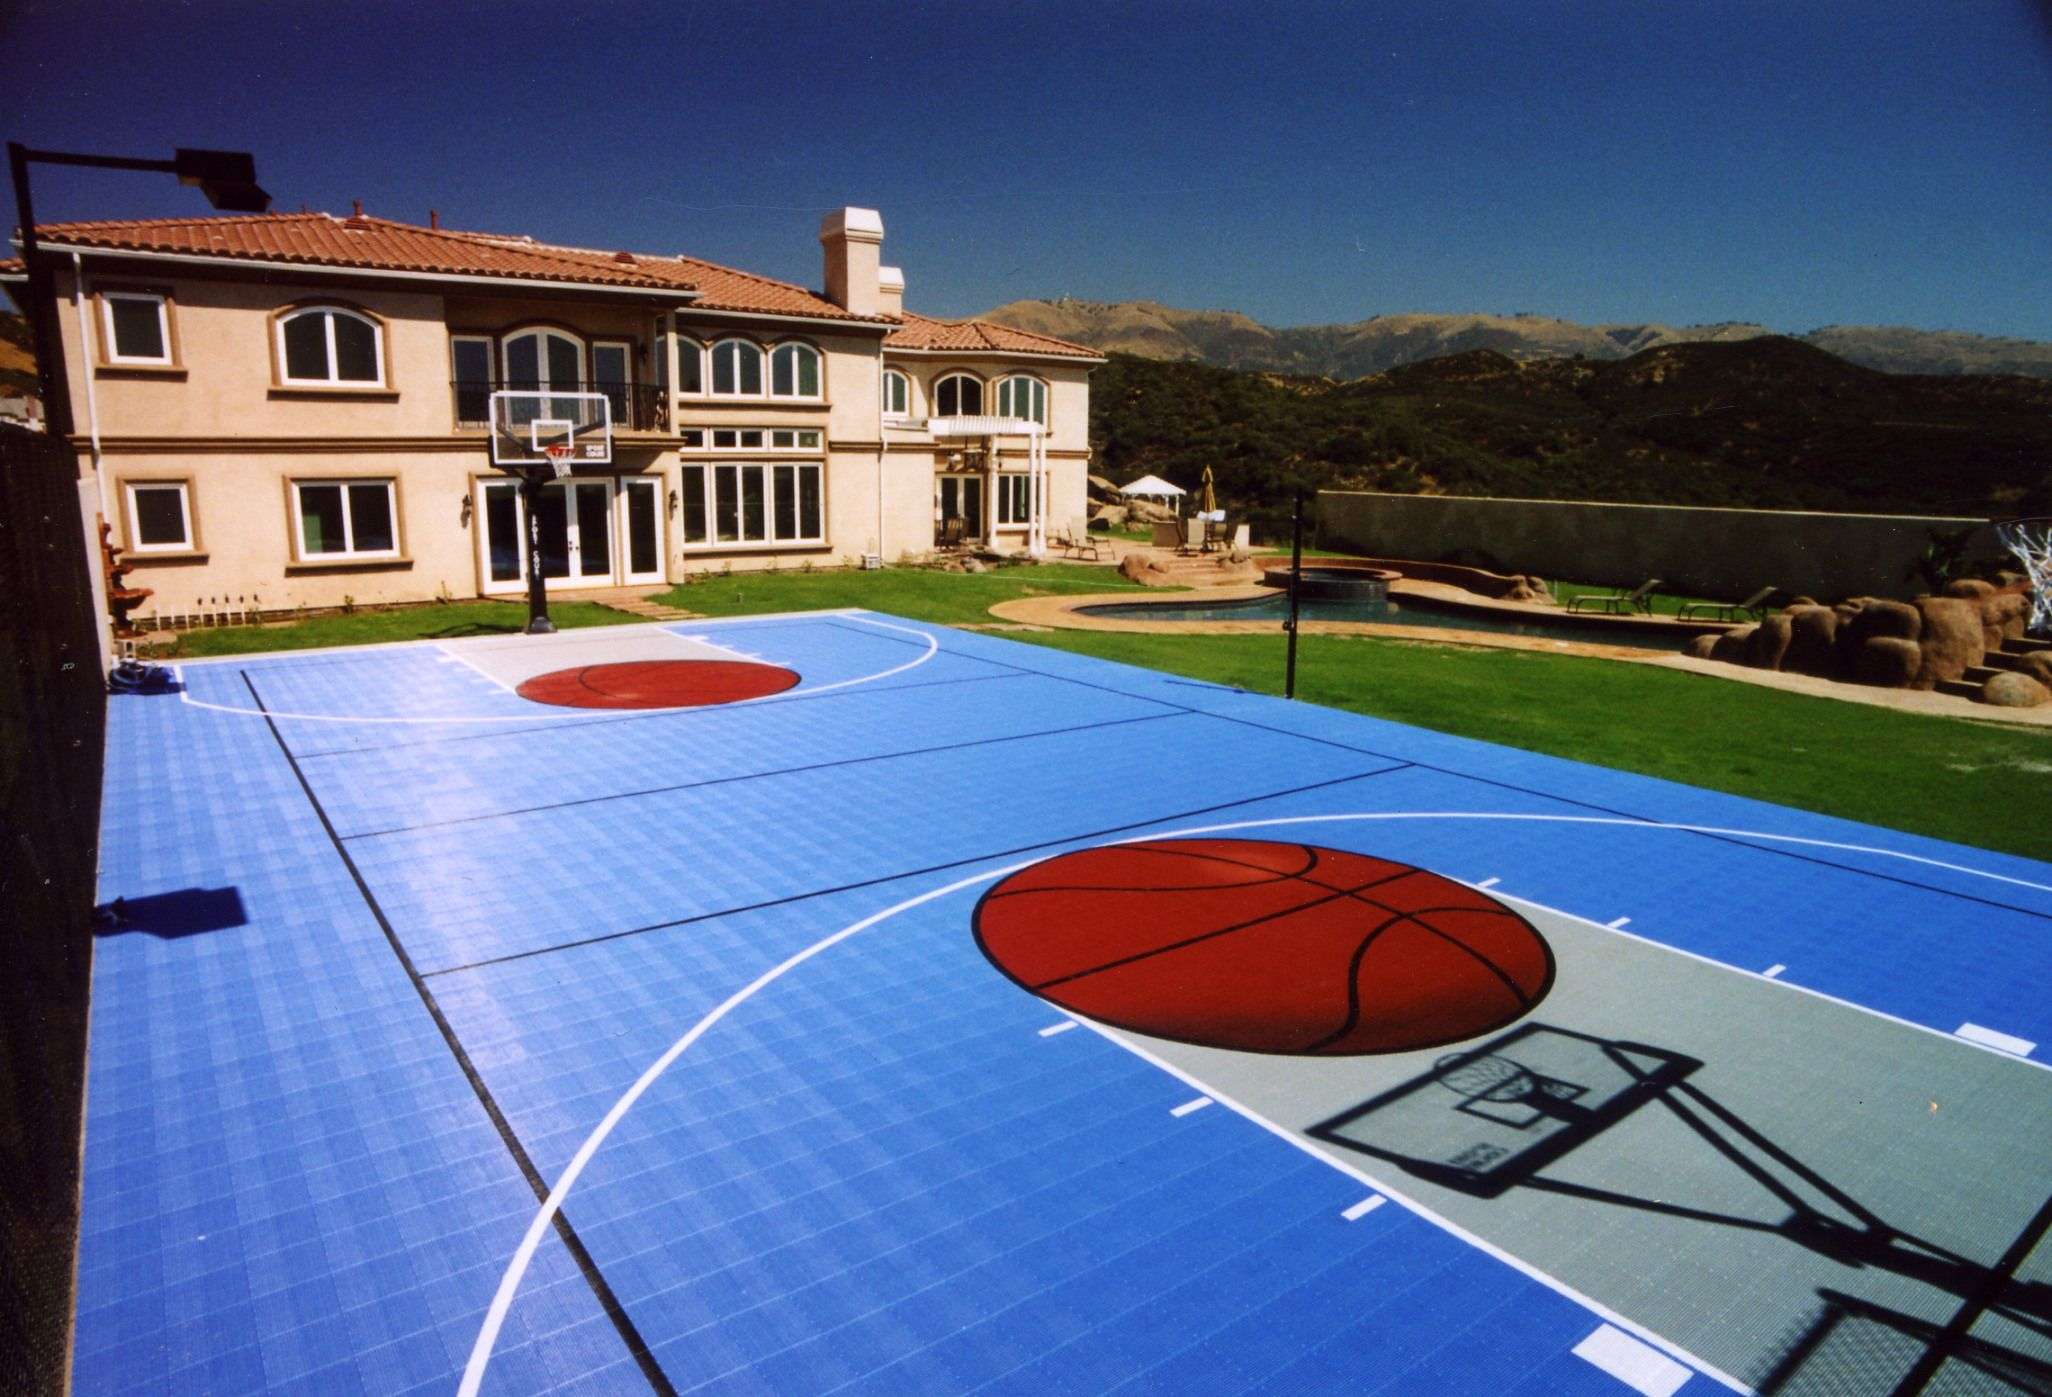 Check out this Backyard Court perfect for the Basketball AND